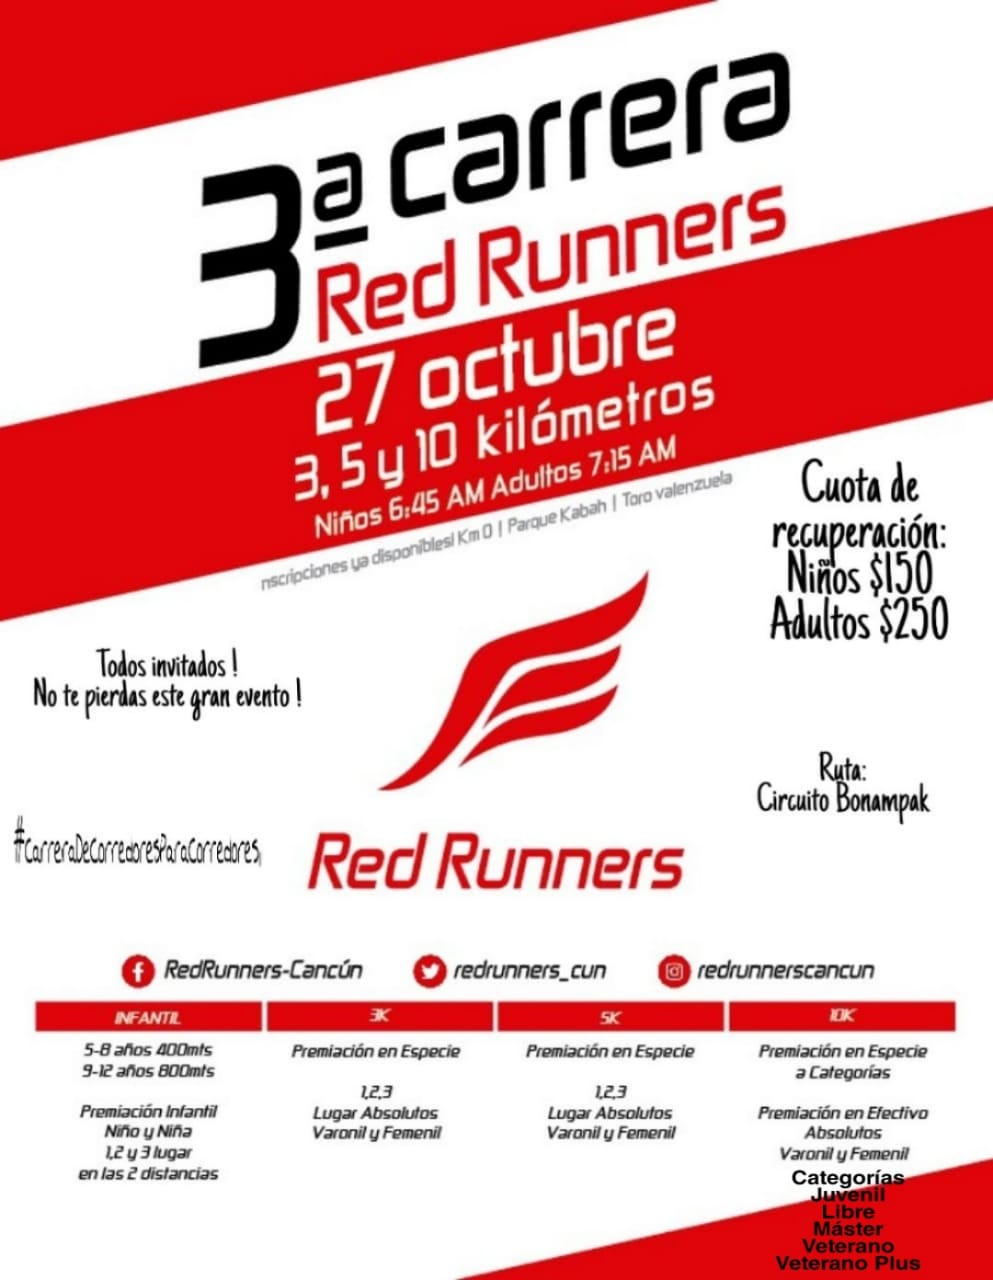 3ra Carrera Red Runners